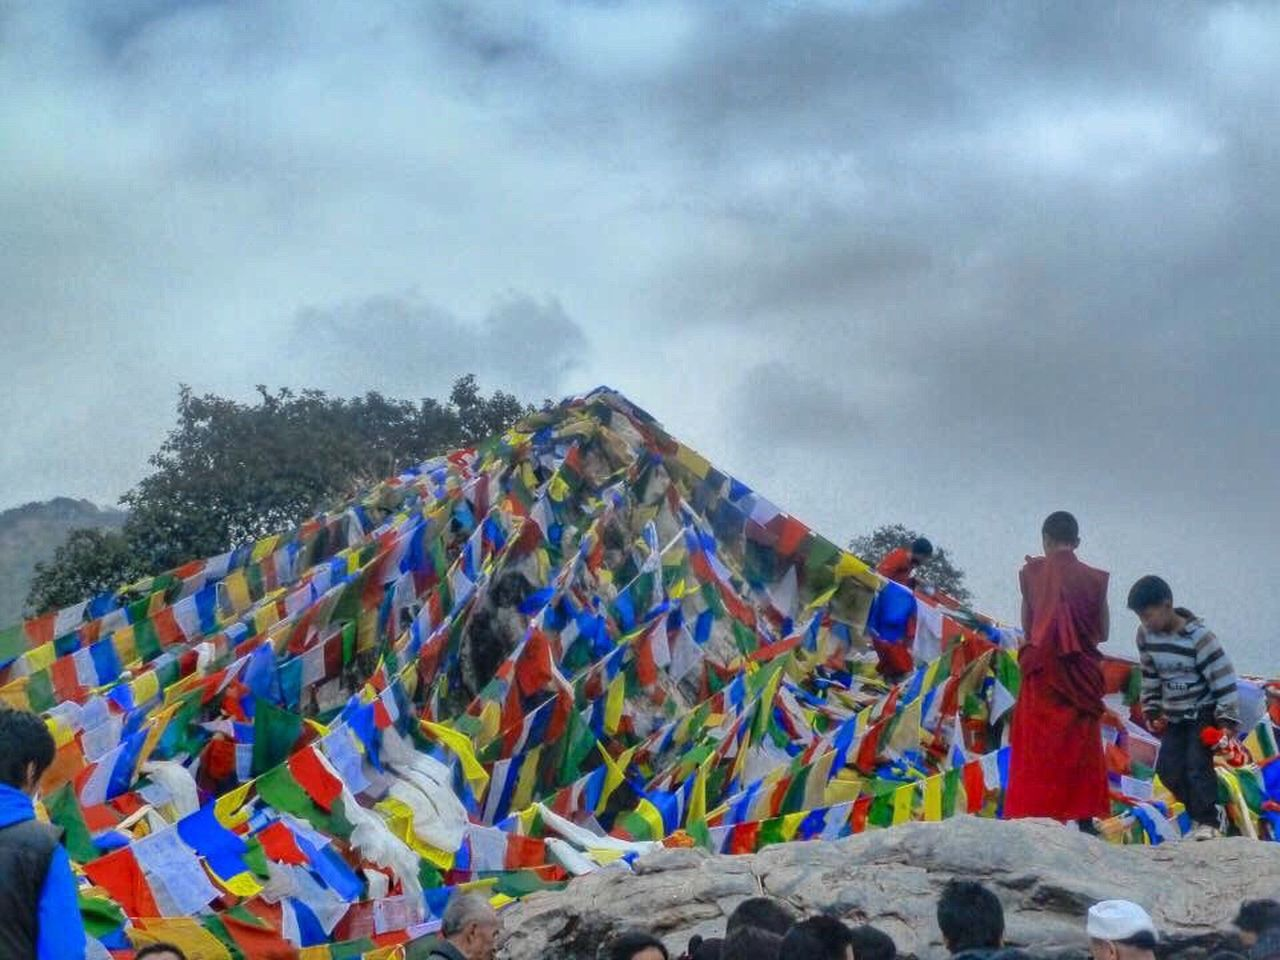 Beautifully Organized Multi Colored Sky Real People Cloud - Sky Outdoors Nature Buddhism Buddhist Temple Buddhist Monks Mountain Prayer Flags  India Travel